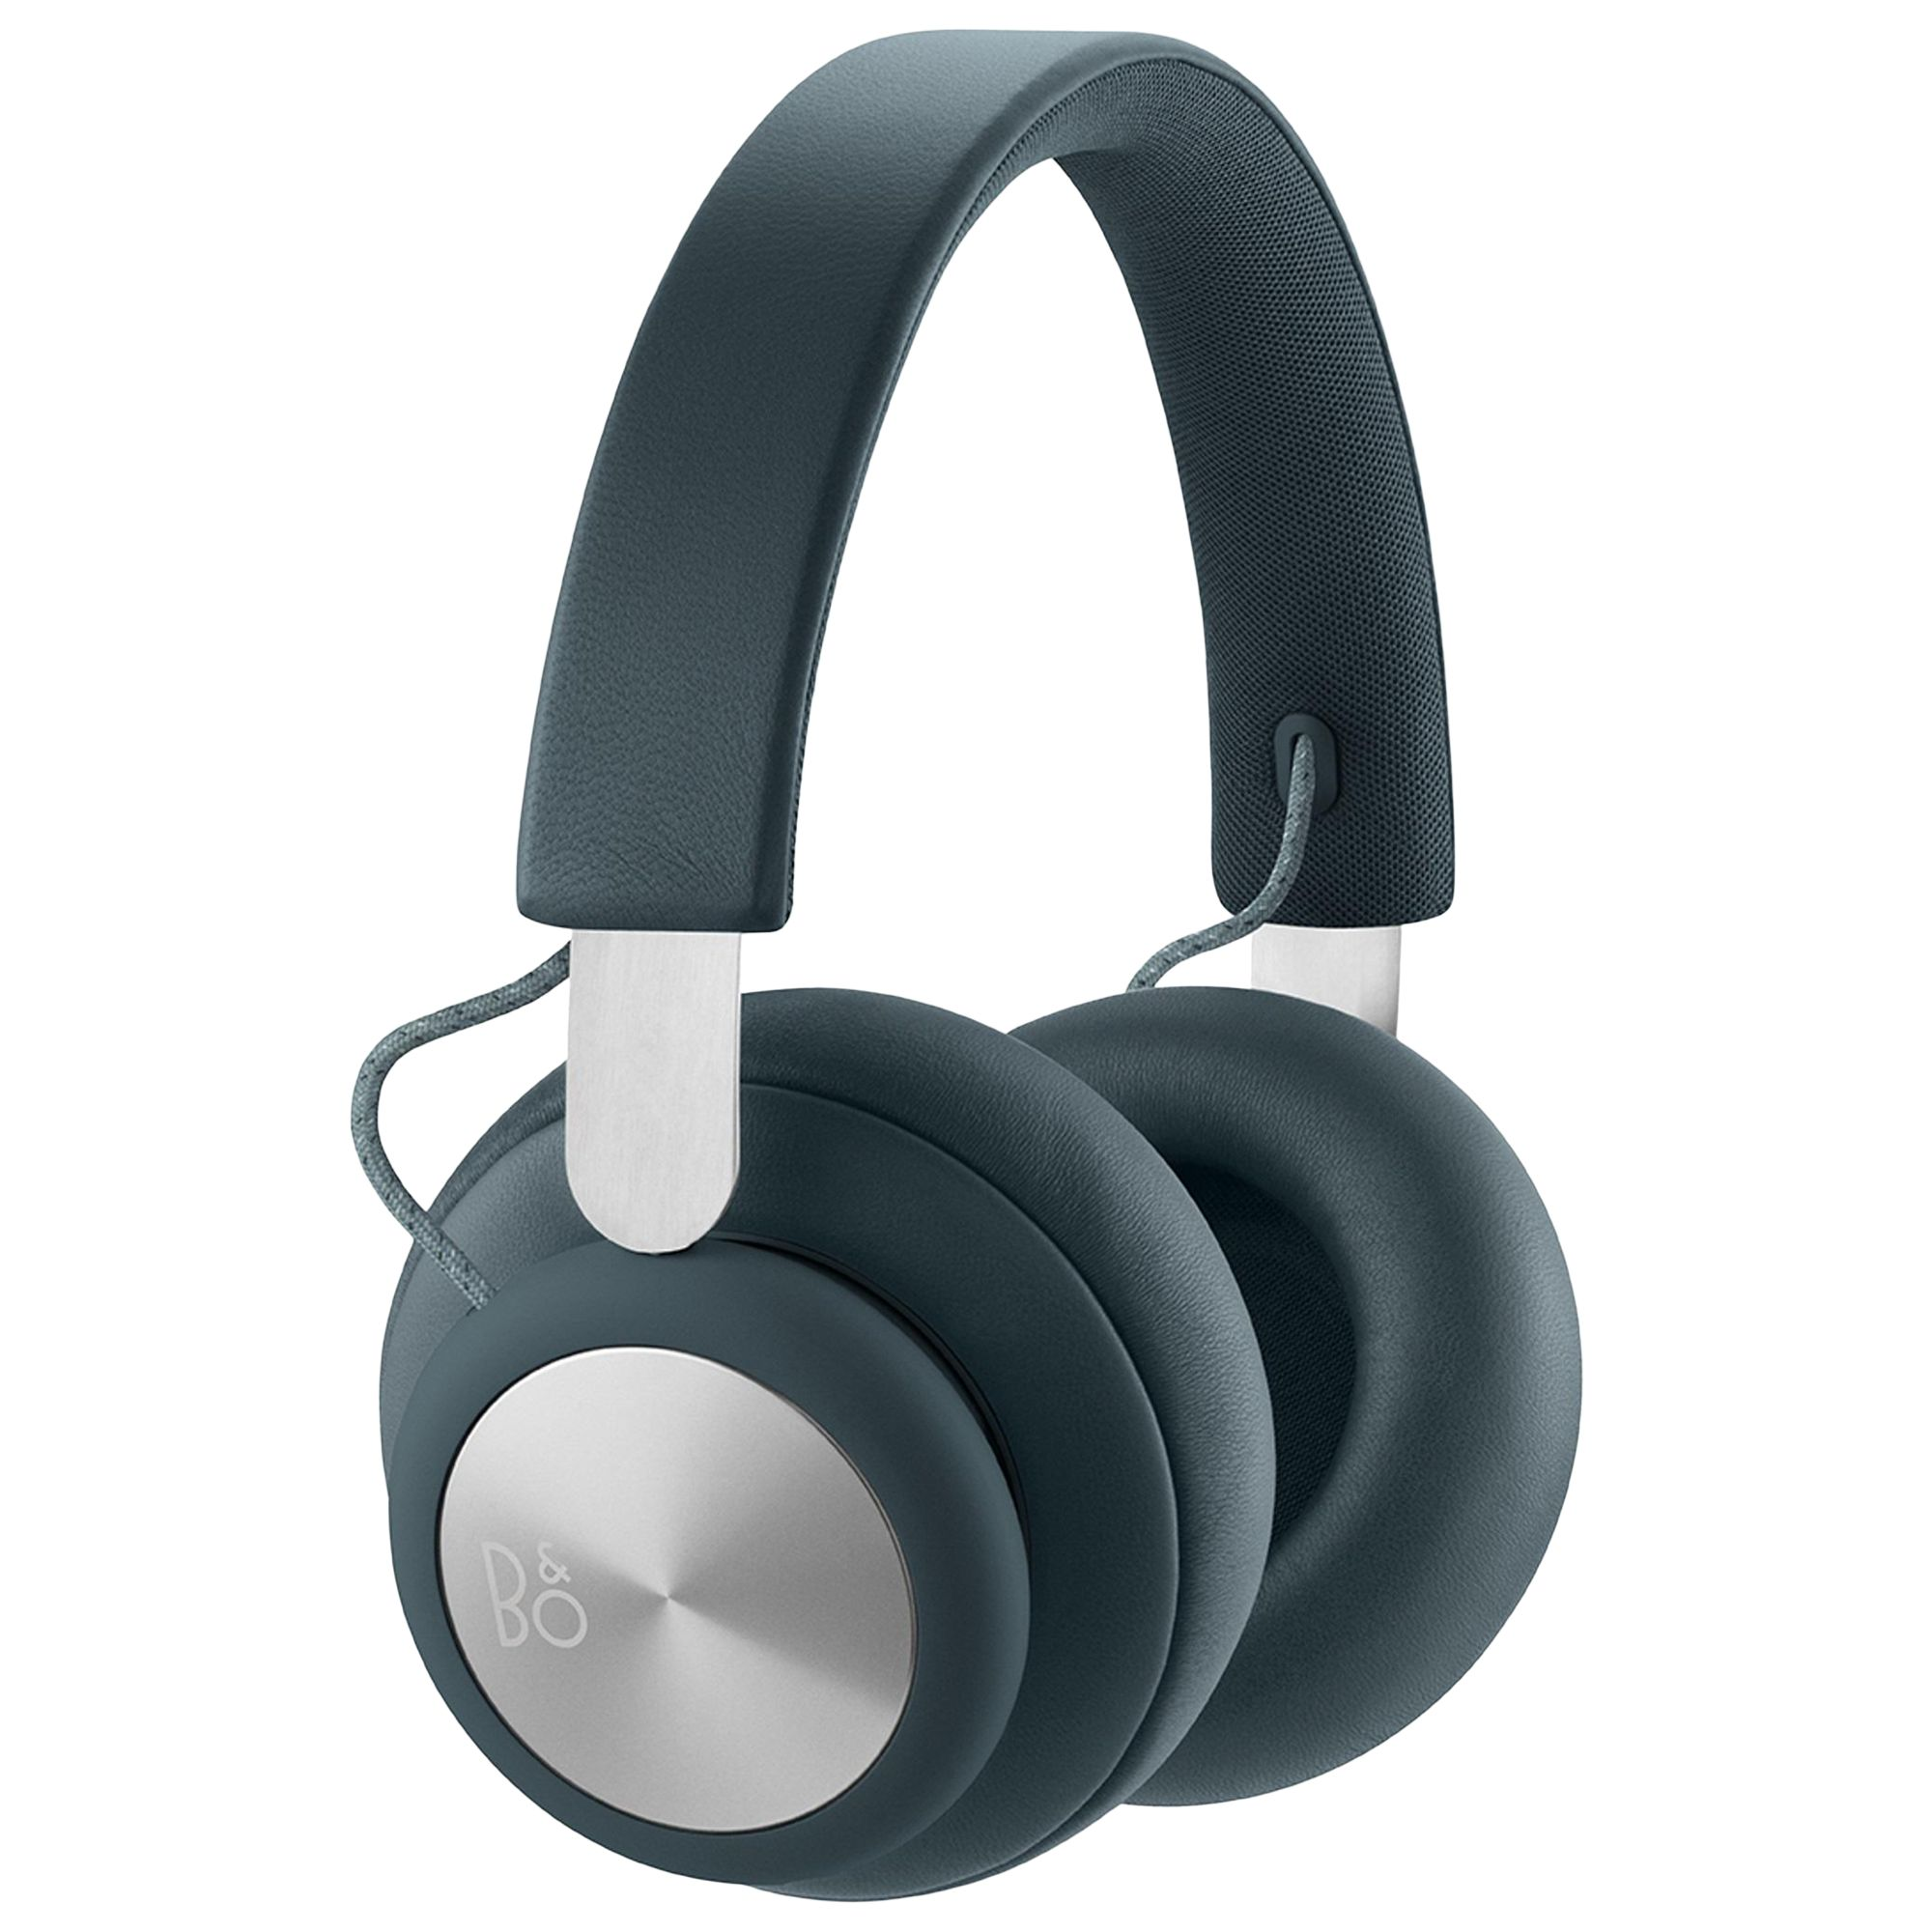 a0bb30dfa7bf2d Bang & Olufsen Beoplay H4 Wireless Bluetooth Over-Ear Headphones at John  Lewis & Partners